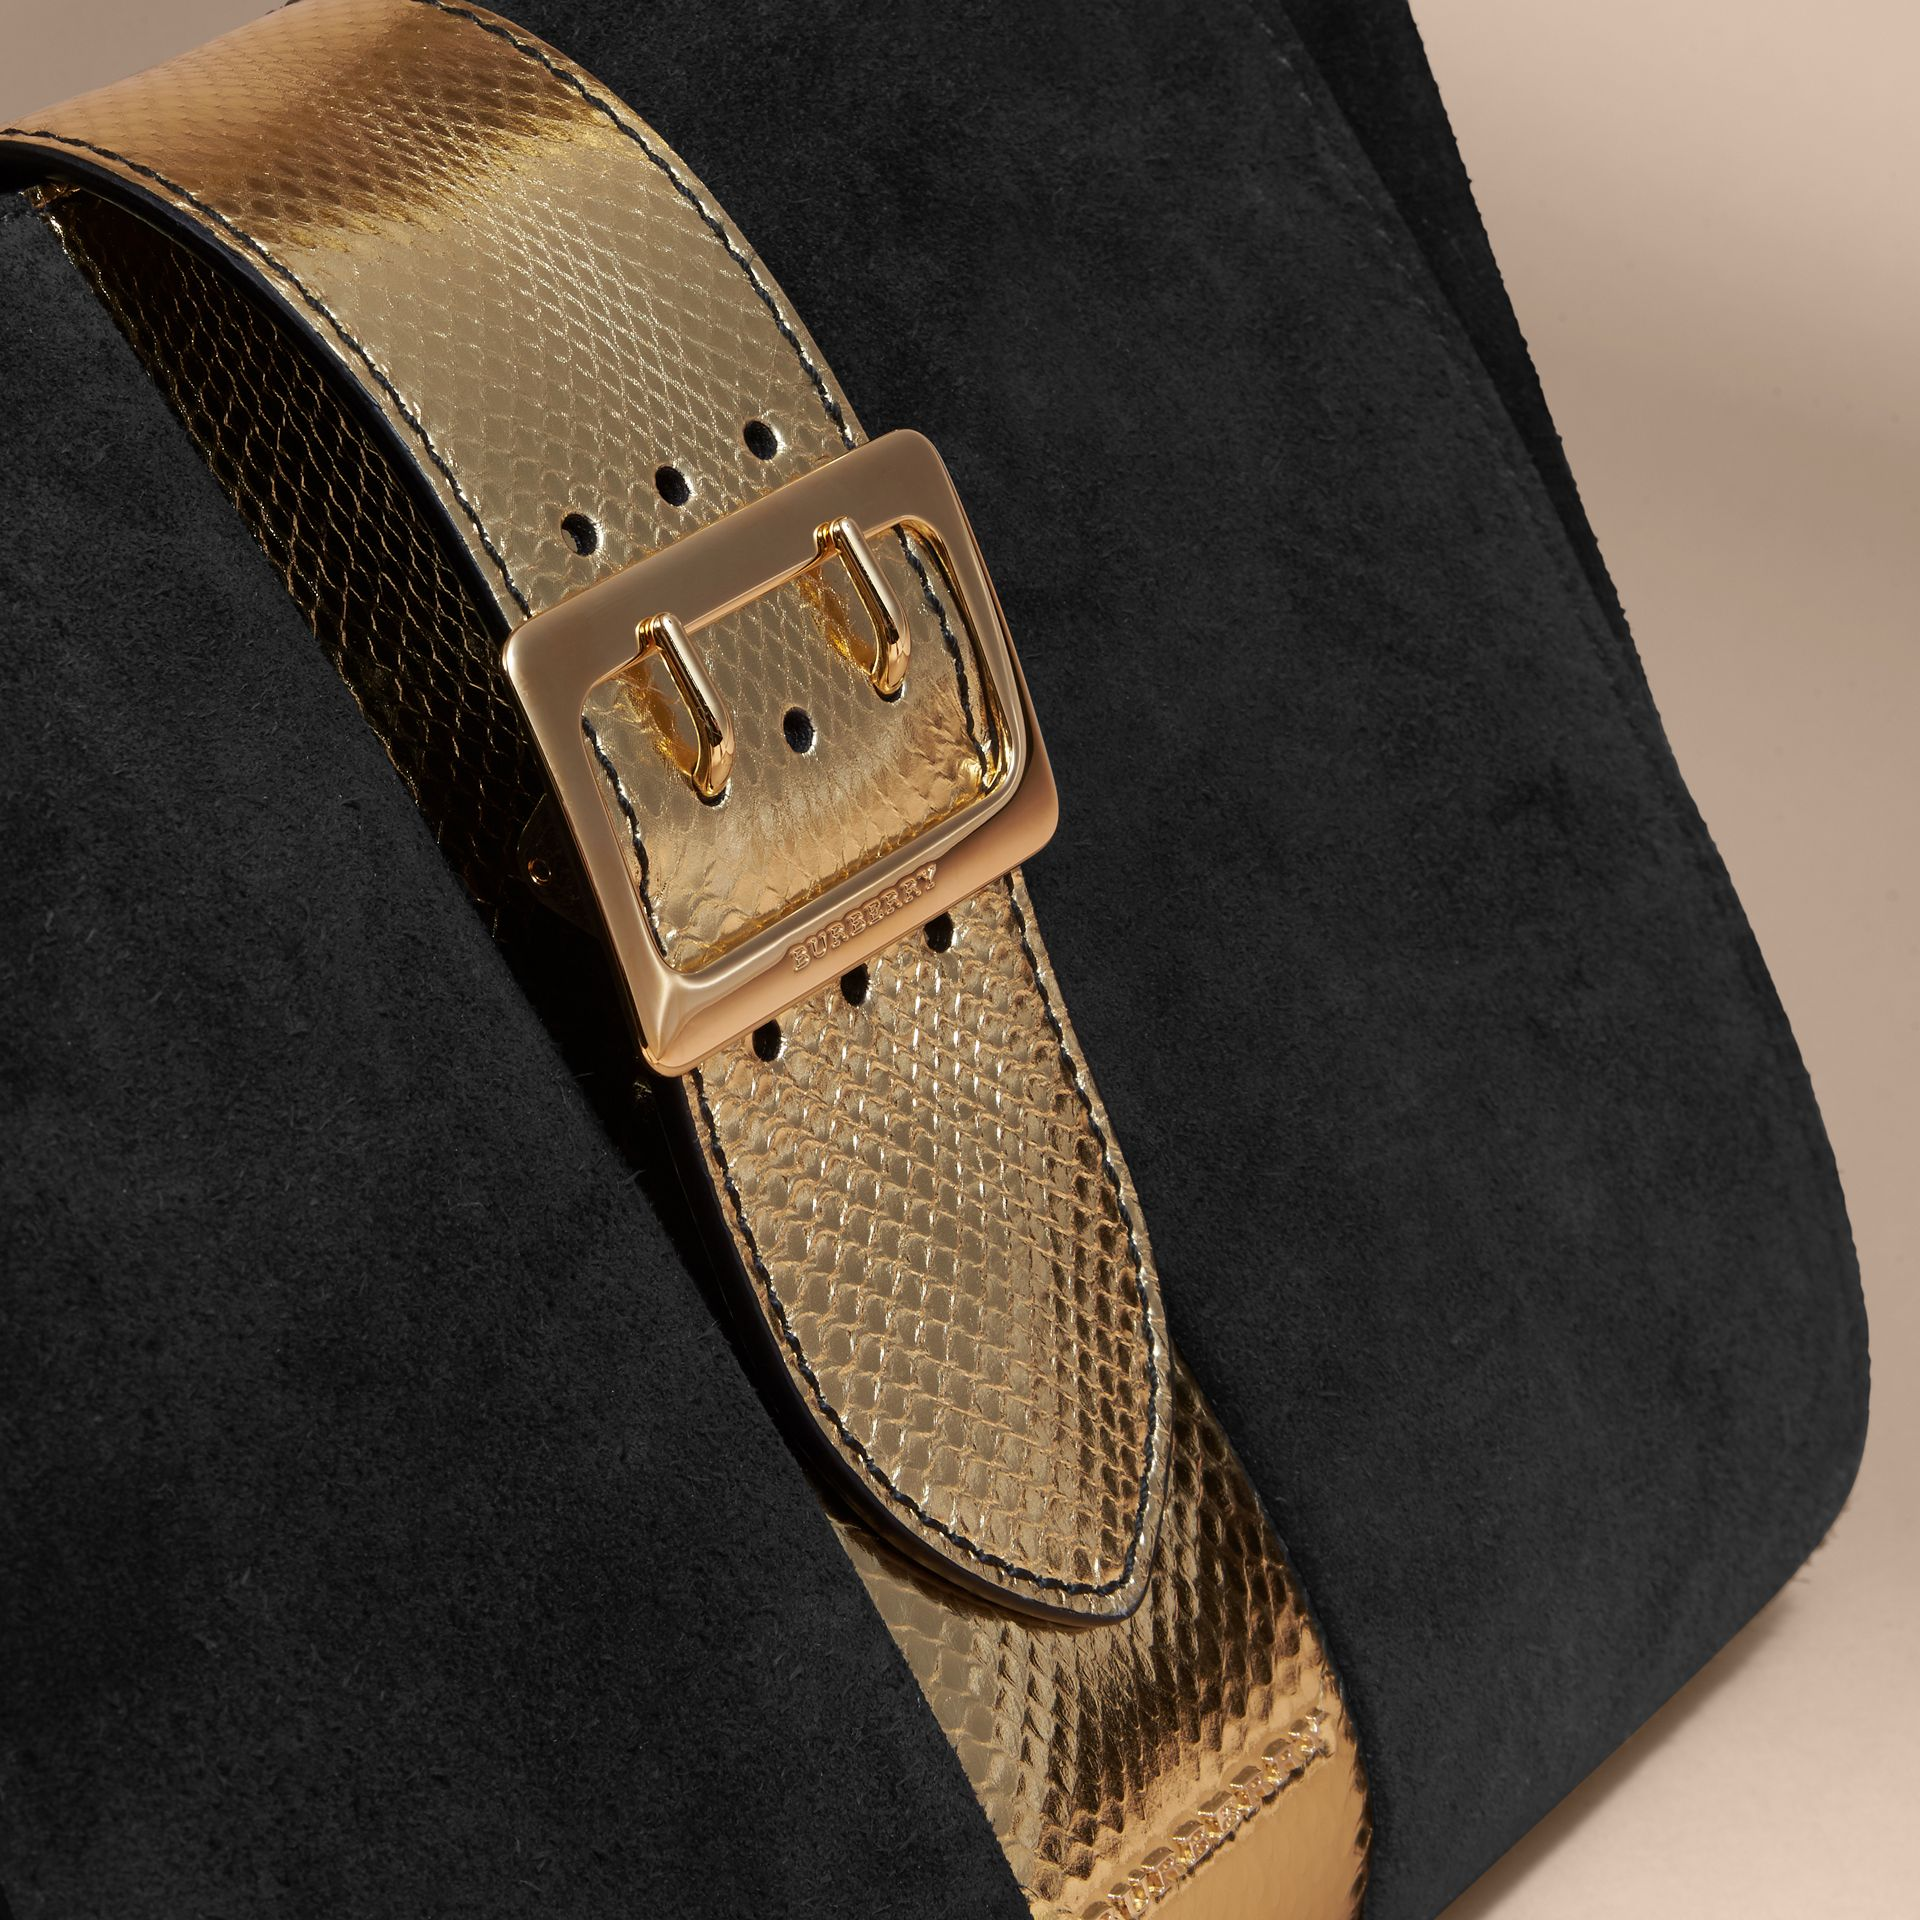 Sac tote The Buckle moyen en cuir velours et peau de serpent (Noir/or) - Femme | Burberry - photo de la galerie 2